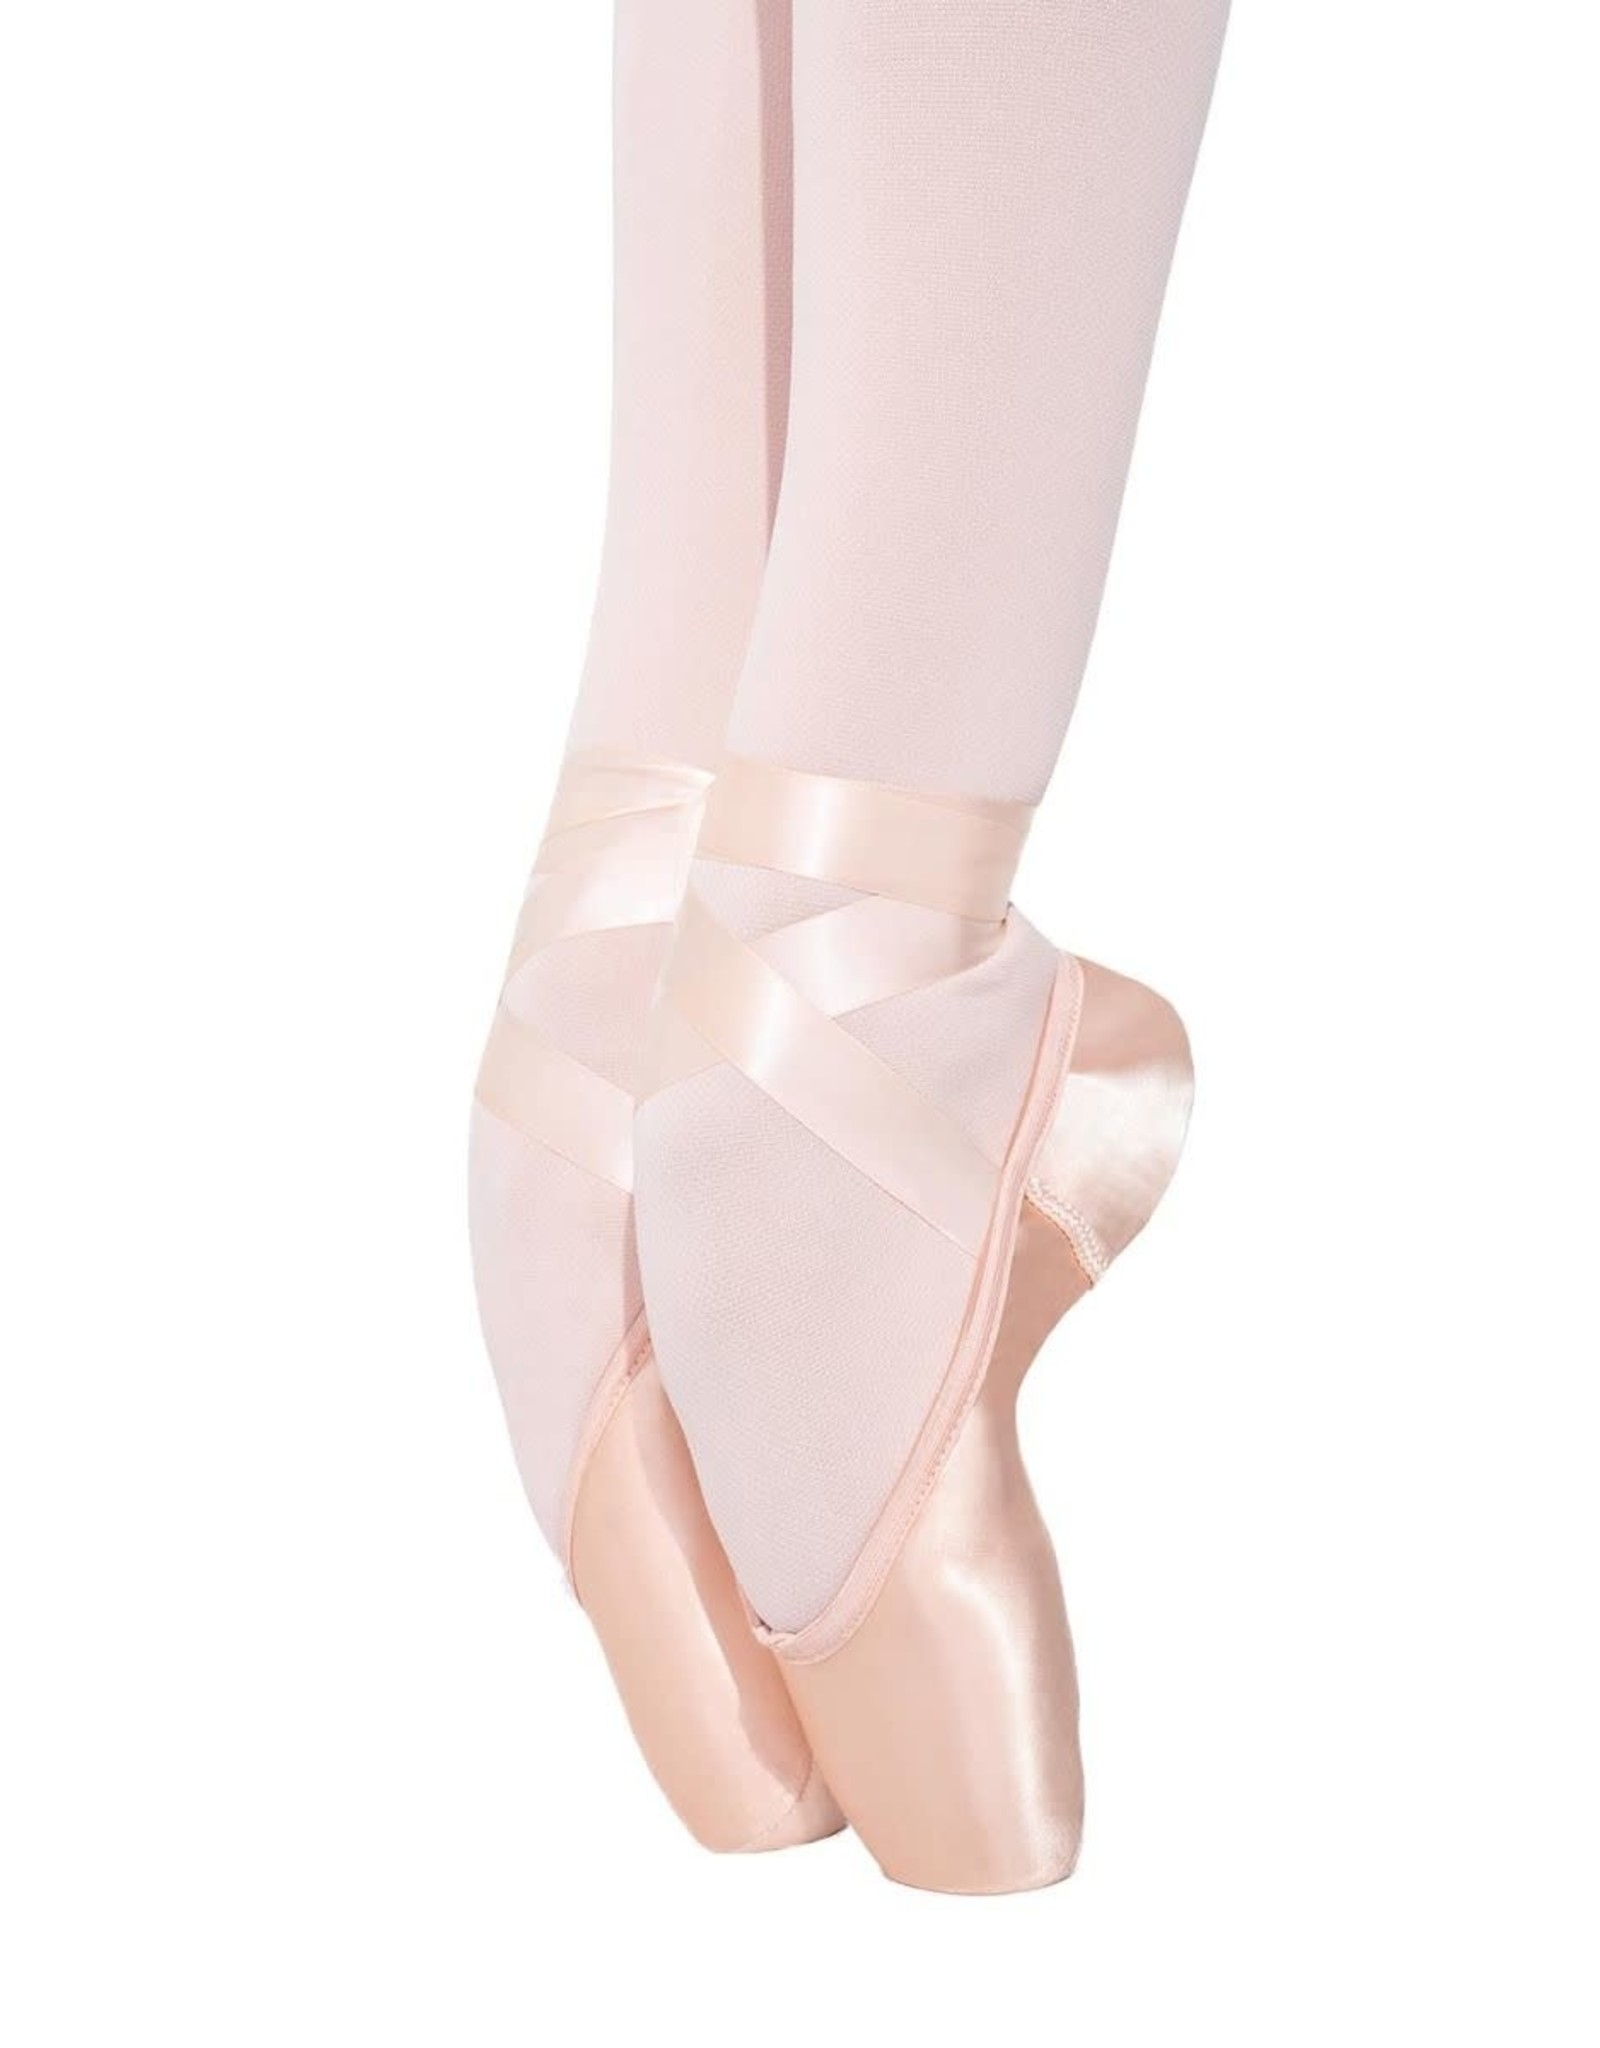 Capezio Capezio Airess Broad Toe (MaxiFirm) Pointe Shoe